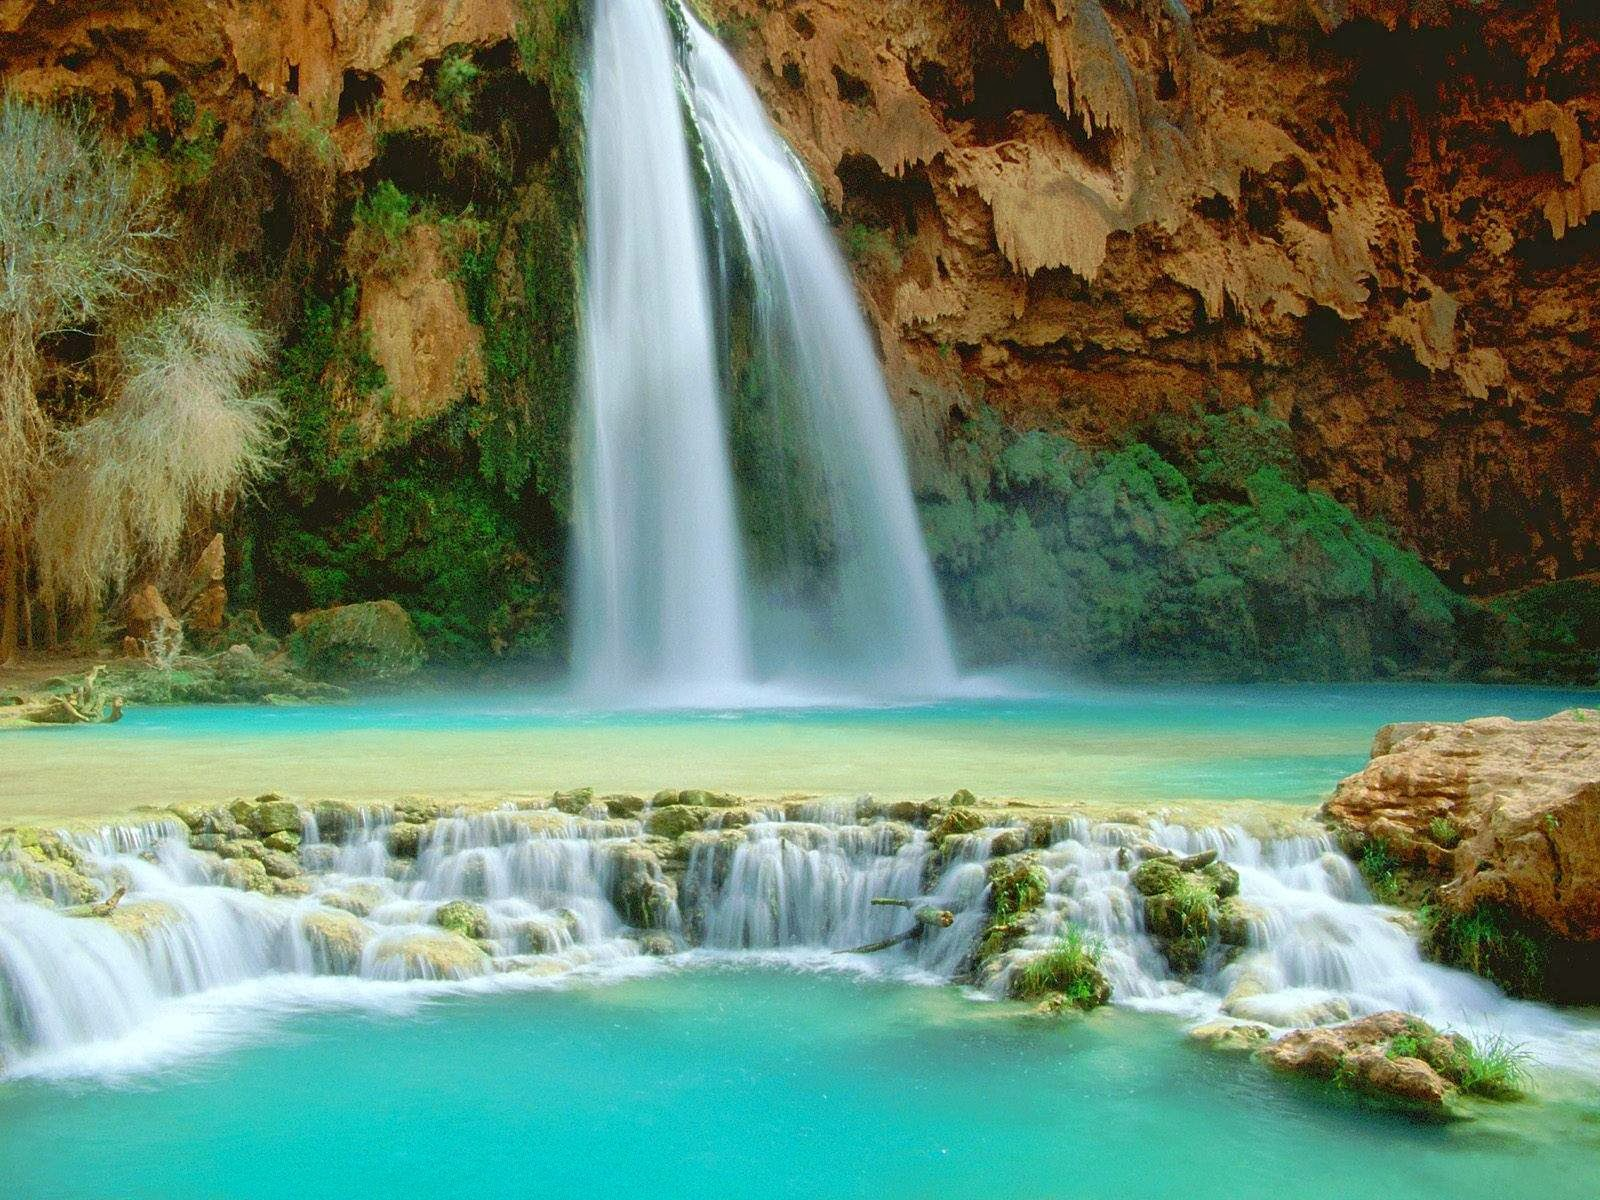 HD Wallpapers 3D Waterfall Wallpapers